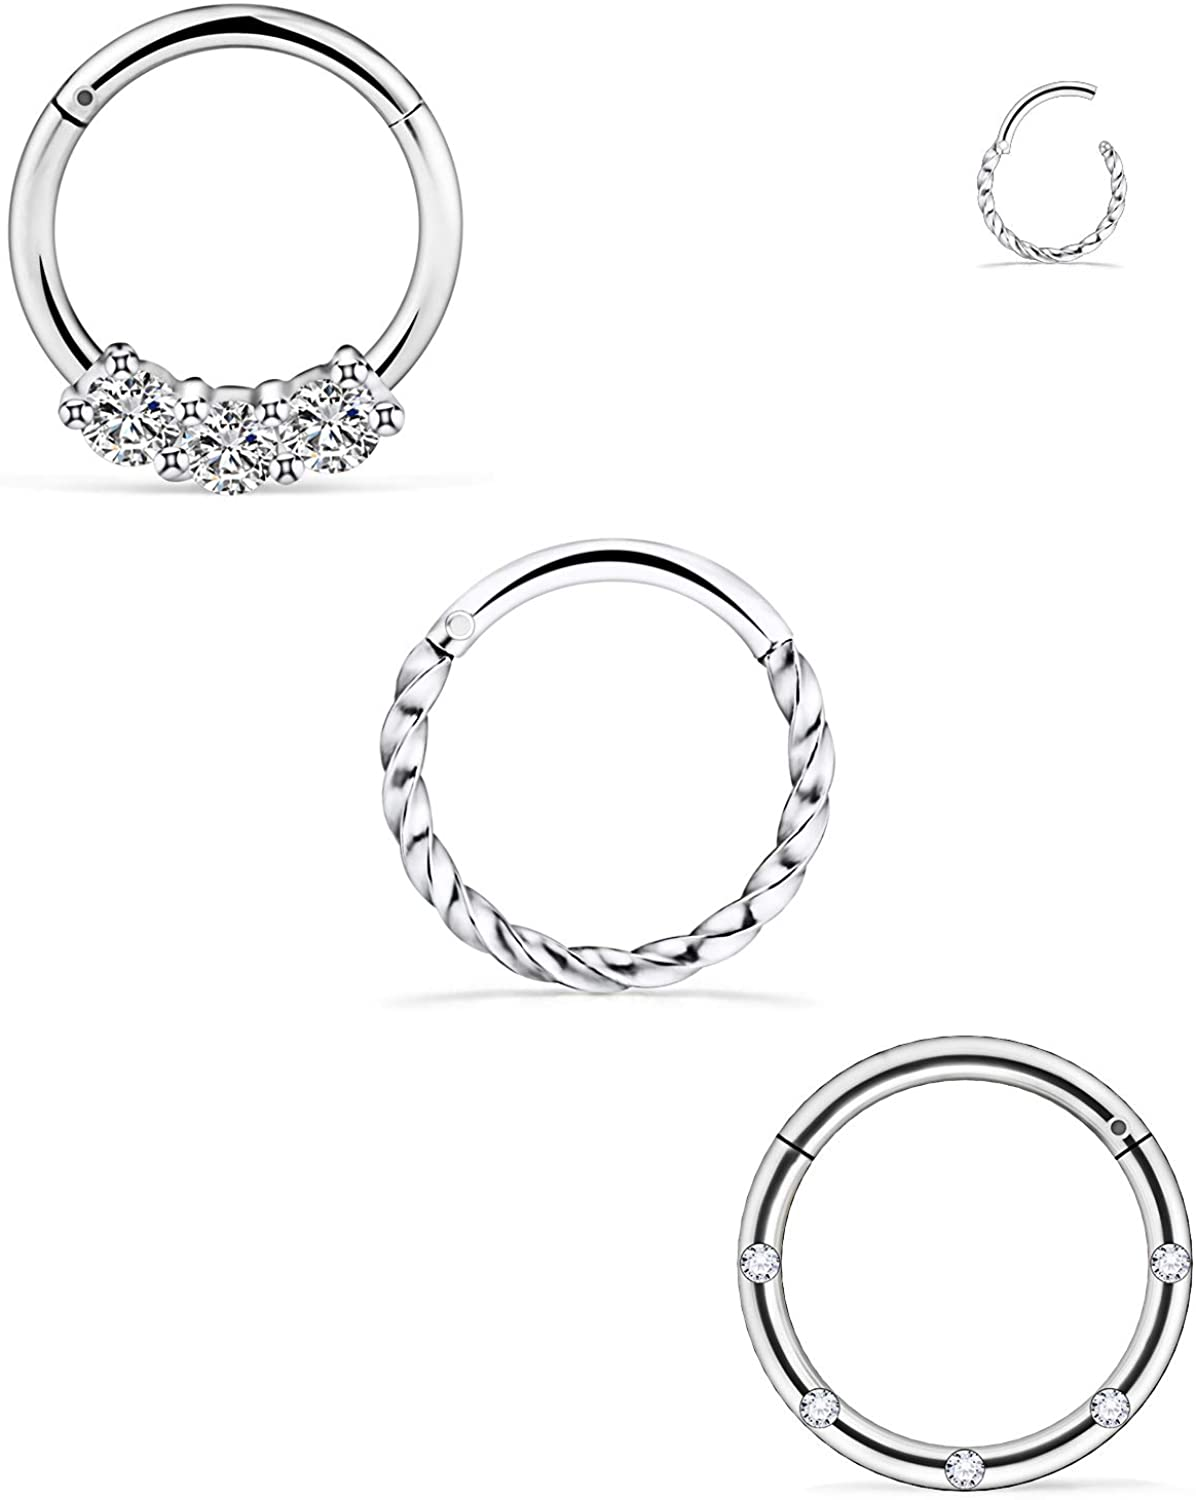 Dyknasz Septum Ring 16G Surgical Steel Nose Hoop Ring Septum Clicker Hinged Seamless Segment Ring Piercing Jewelry for Women Men Clear Diamond CZ Inlaid